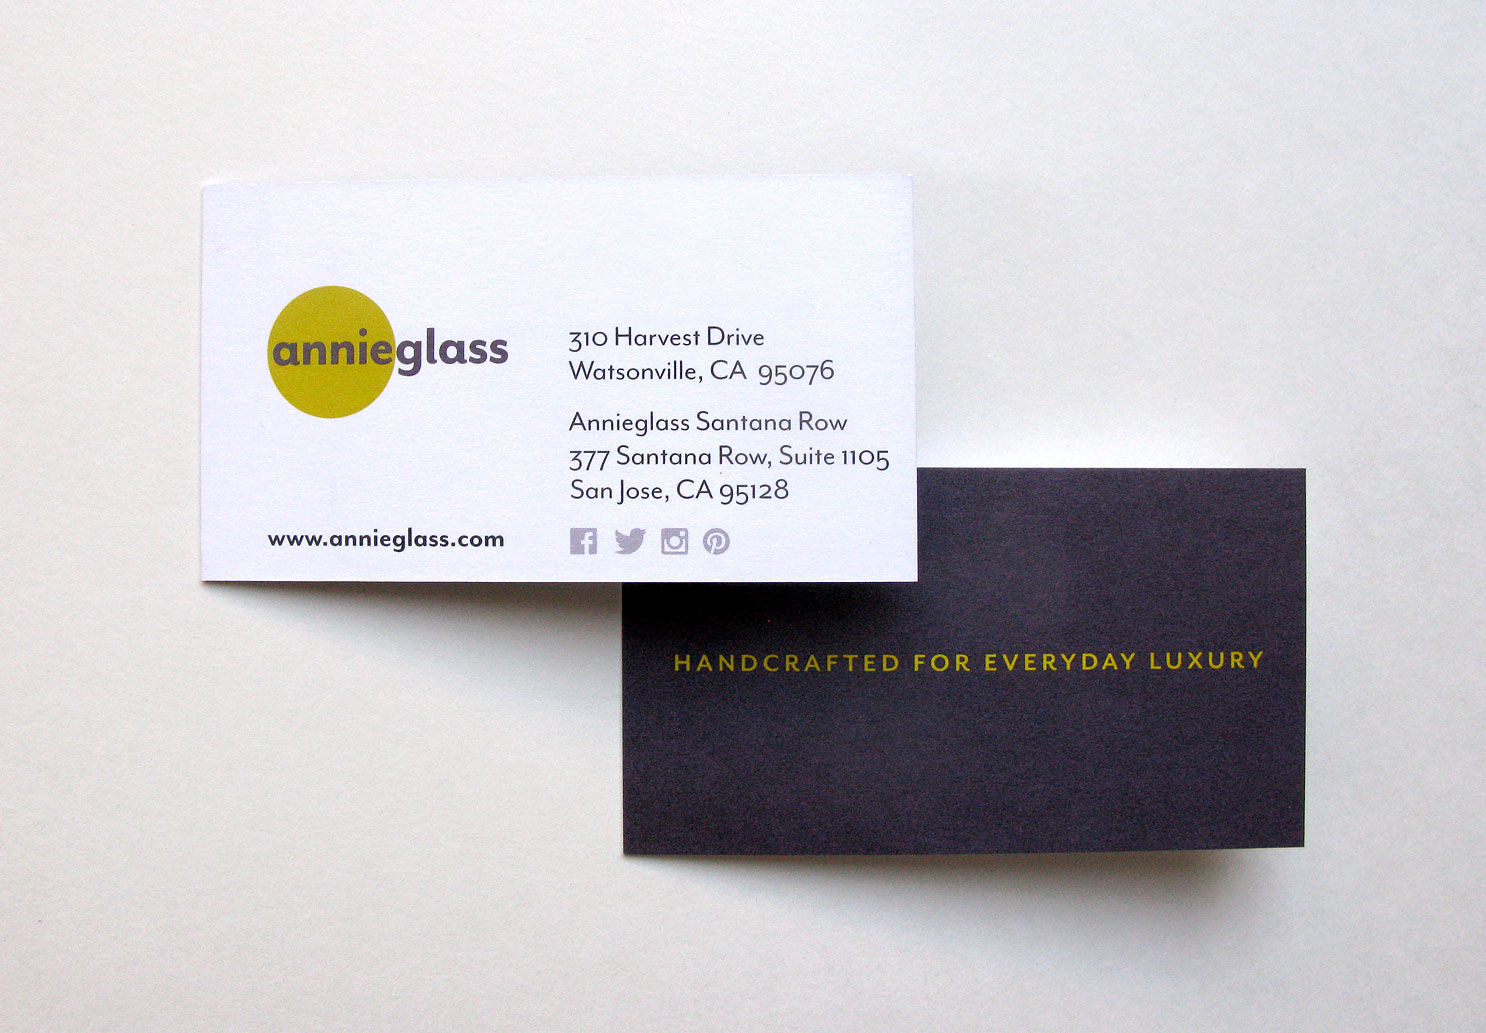 annieglass_businesscards_IMG_9774_no-name.jpg